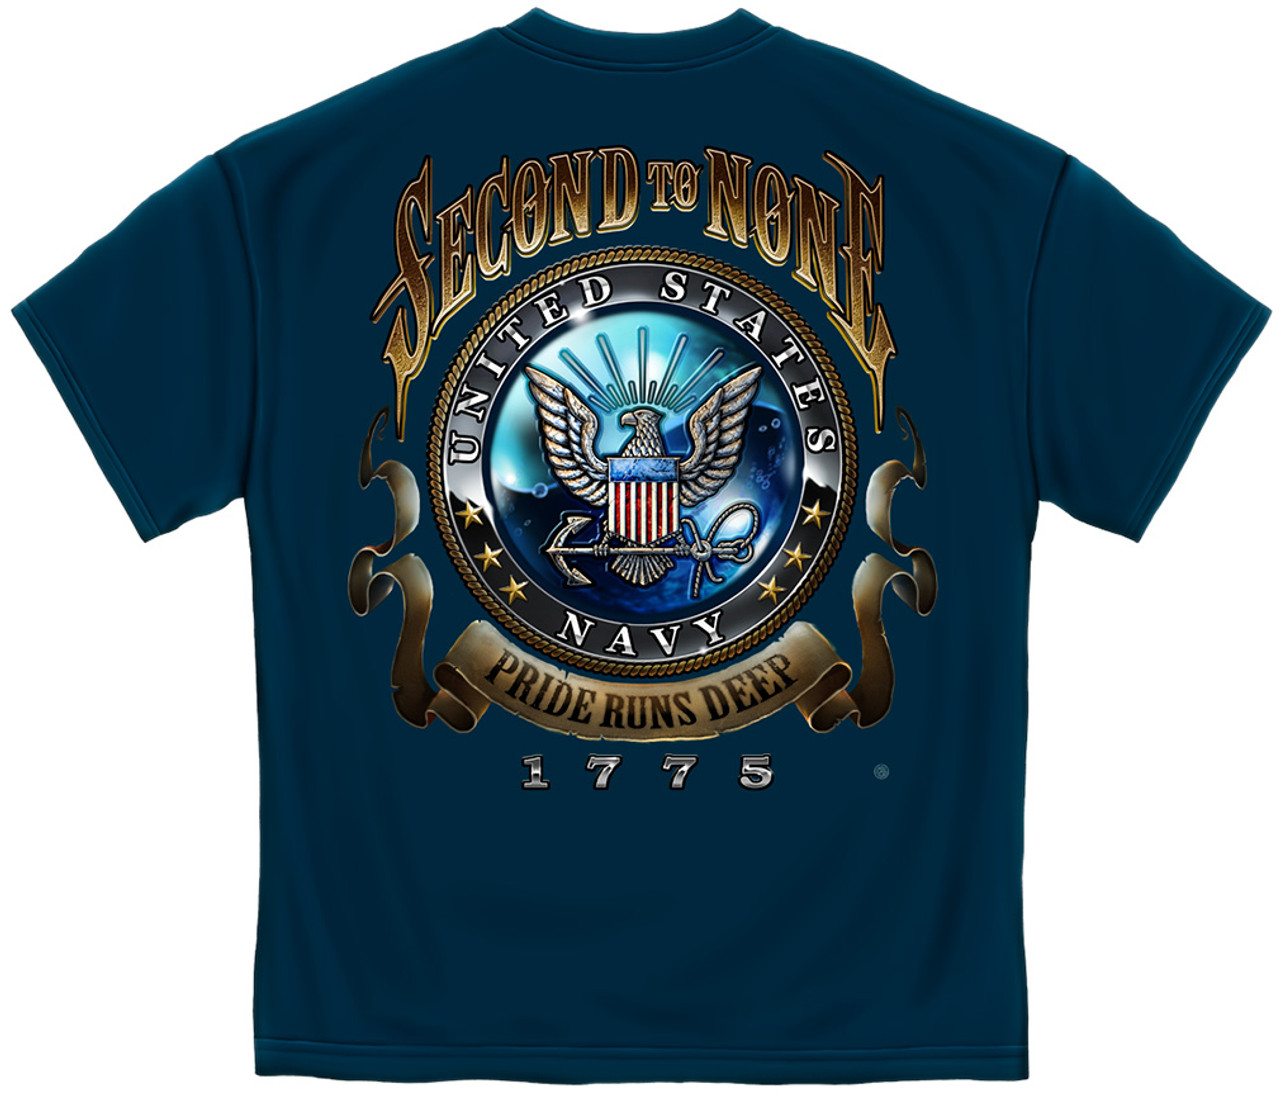 **(OFFICIALLY-LICENSED-U S NAVY/SECOND-TO-NONE,PRIDE-RUNS-DEEP-1775 &  LARGE-OFFICIAL-U S NAVY-SEAL,NICE-DETAILED-CUSTOM-GRAPHIC-PRINTED/PREMIUM-DOUBLE